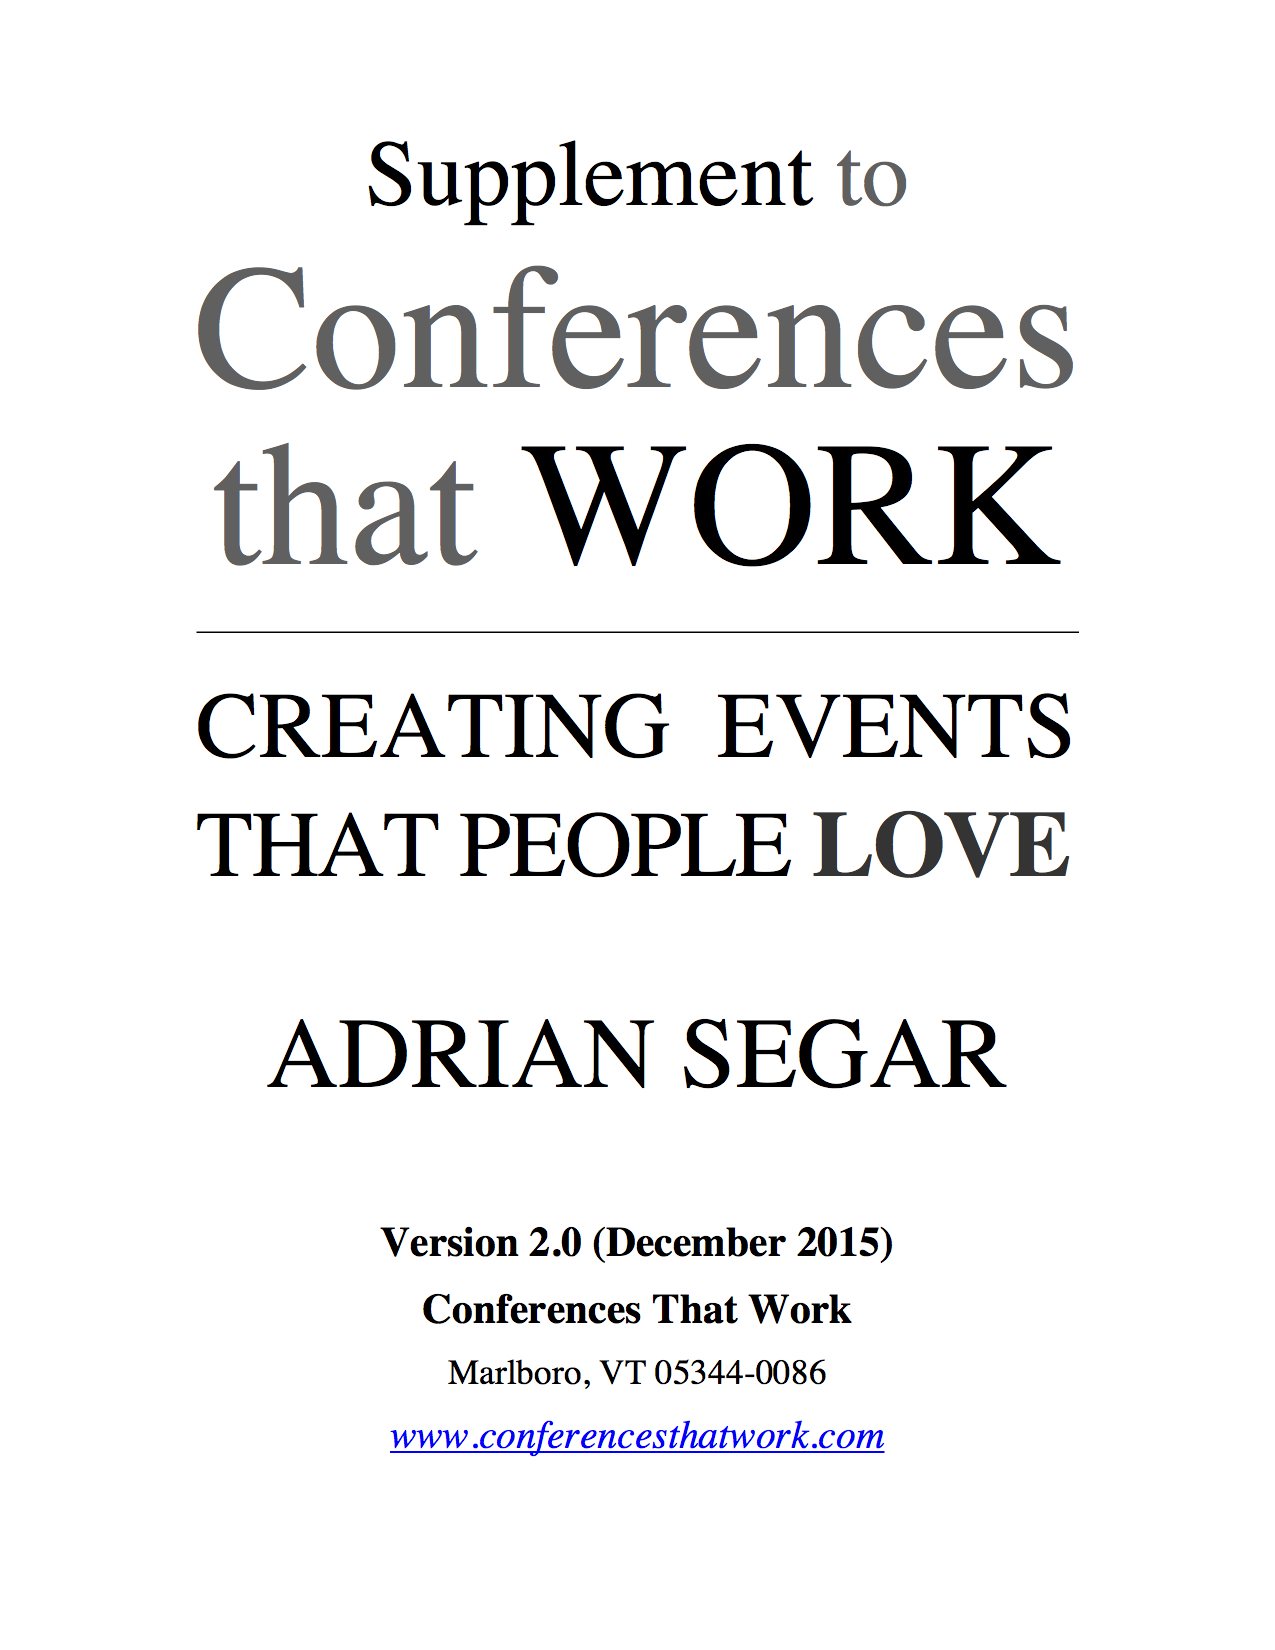 Conferences That Work Free Supplement Pdf Conferences That Work